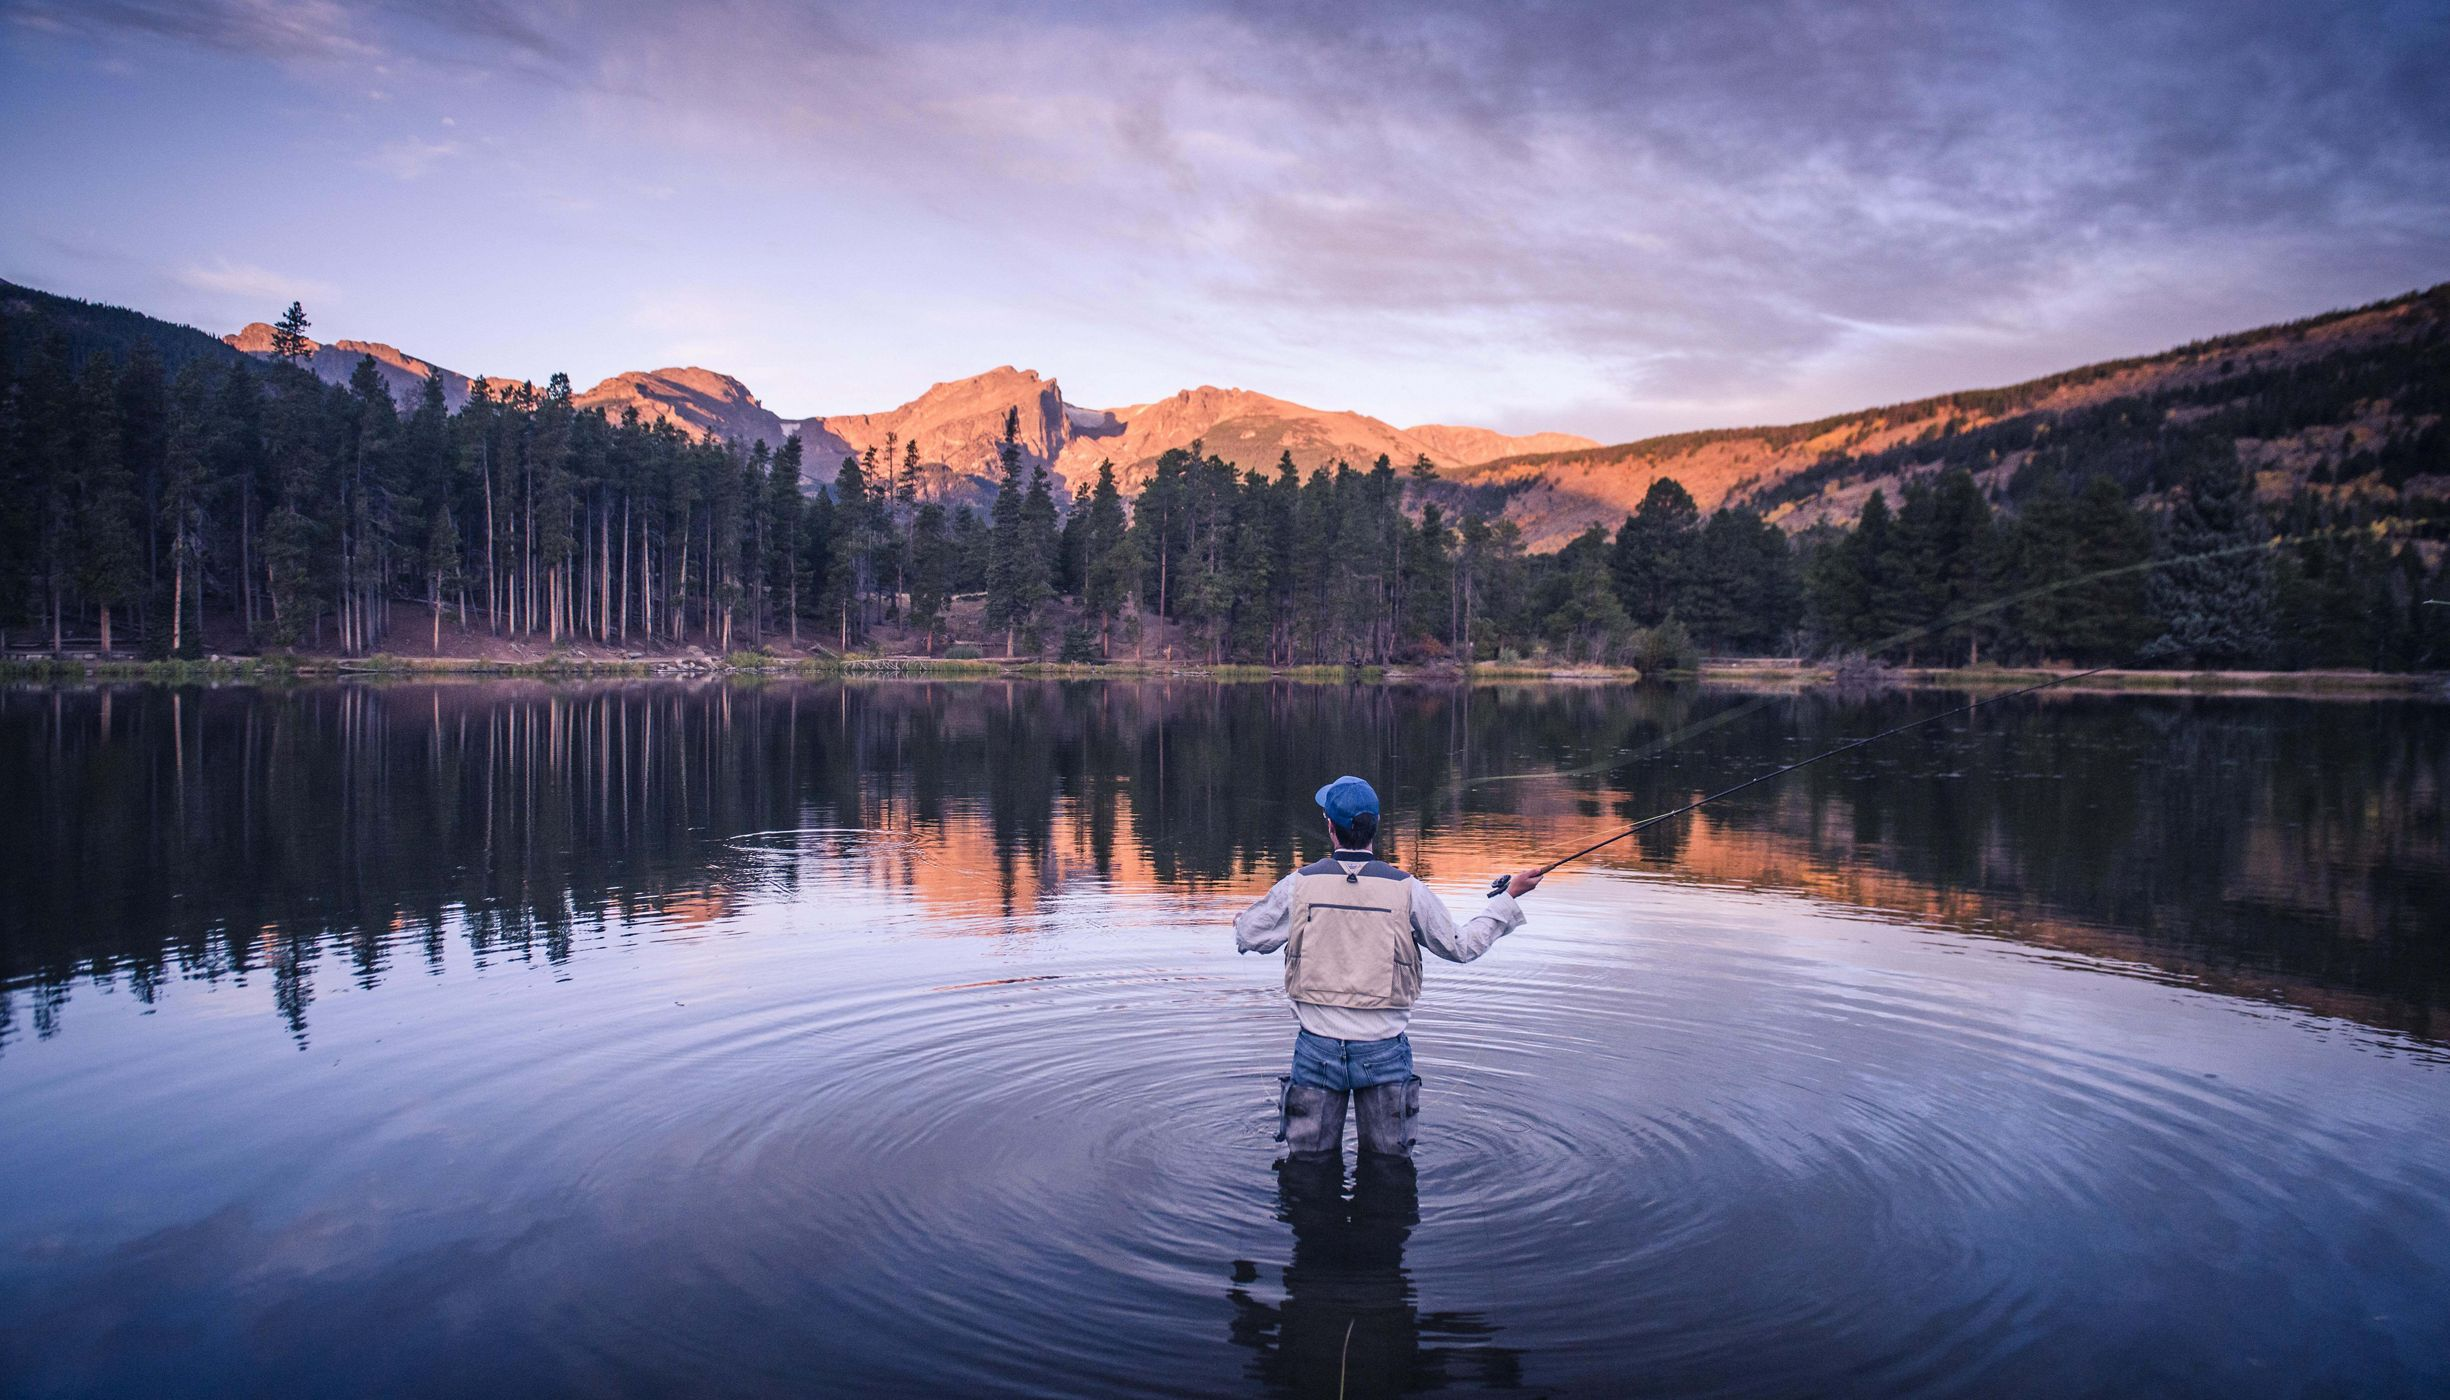 Photo of a man flyfishing in a pond in Rocky Mountain National Park, mountains in background.